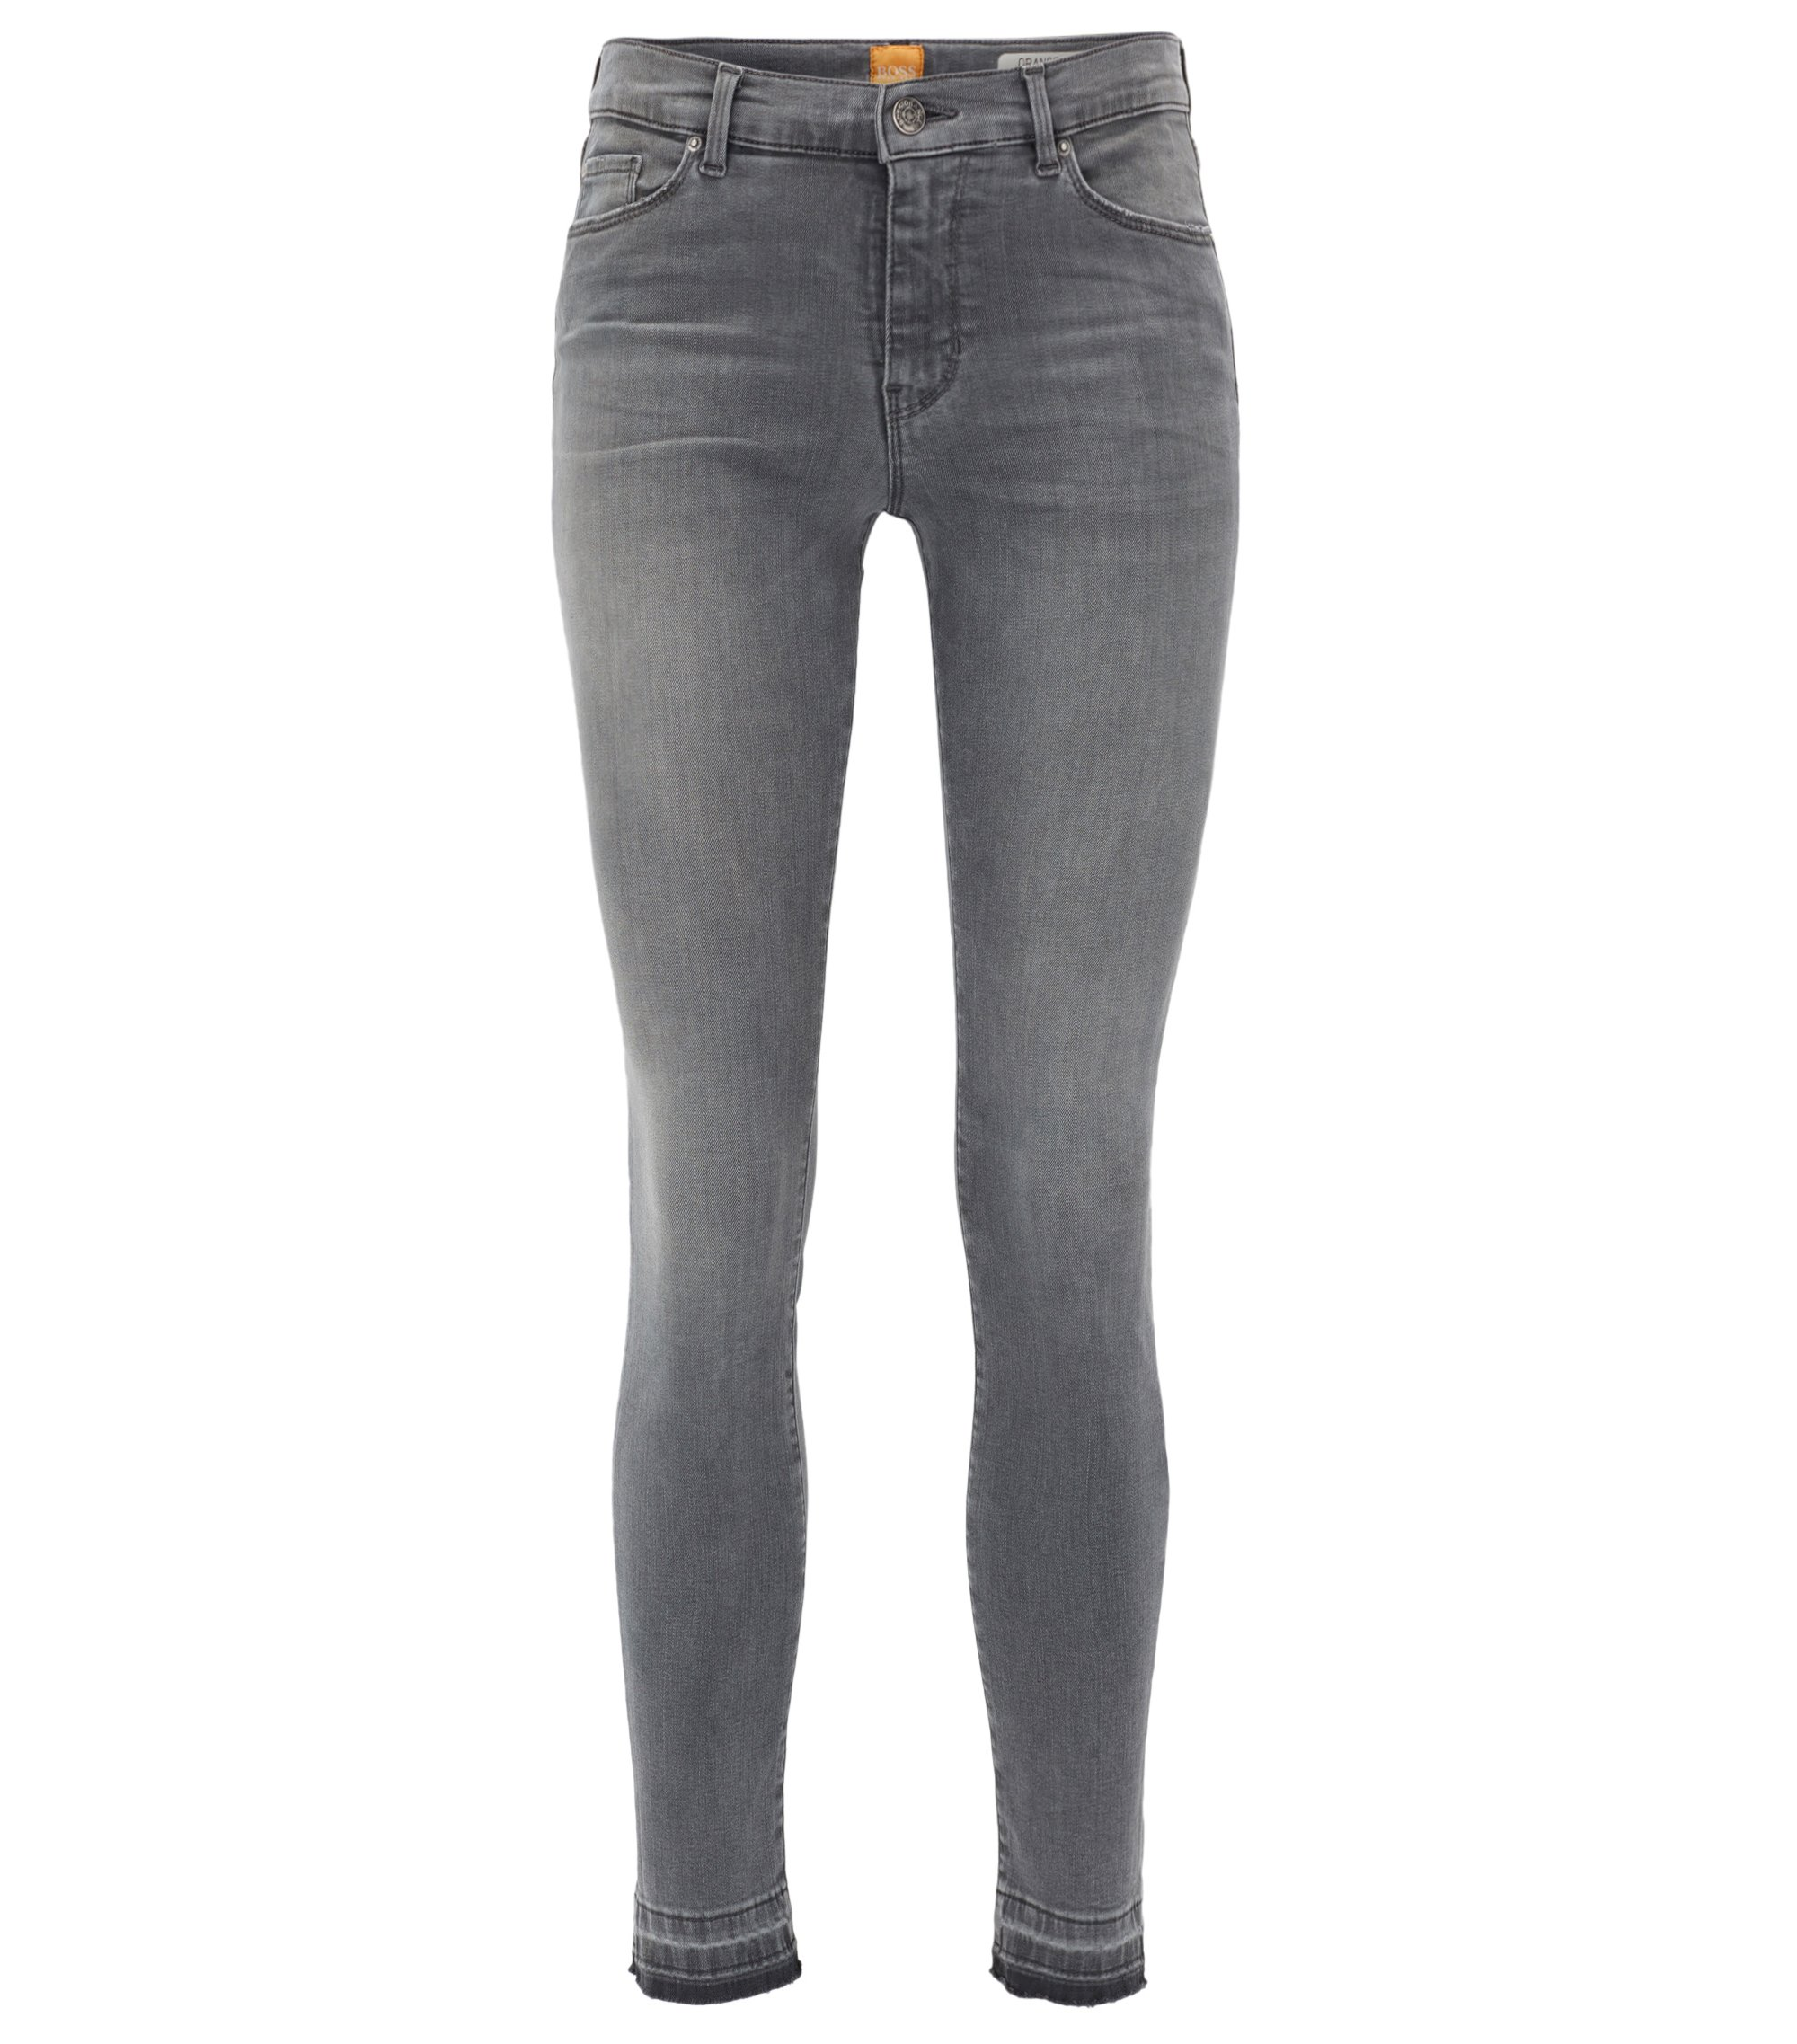 Skinny-Fit Jeans in Cropped-Länge aus Stretch Denim, Grau